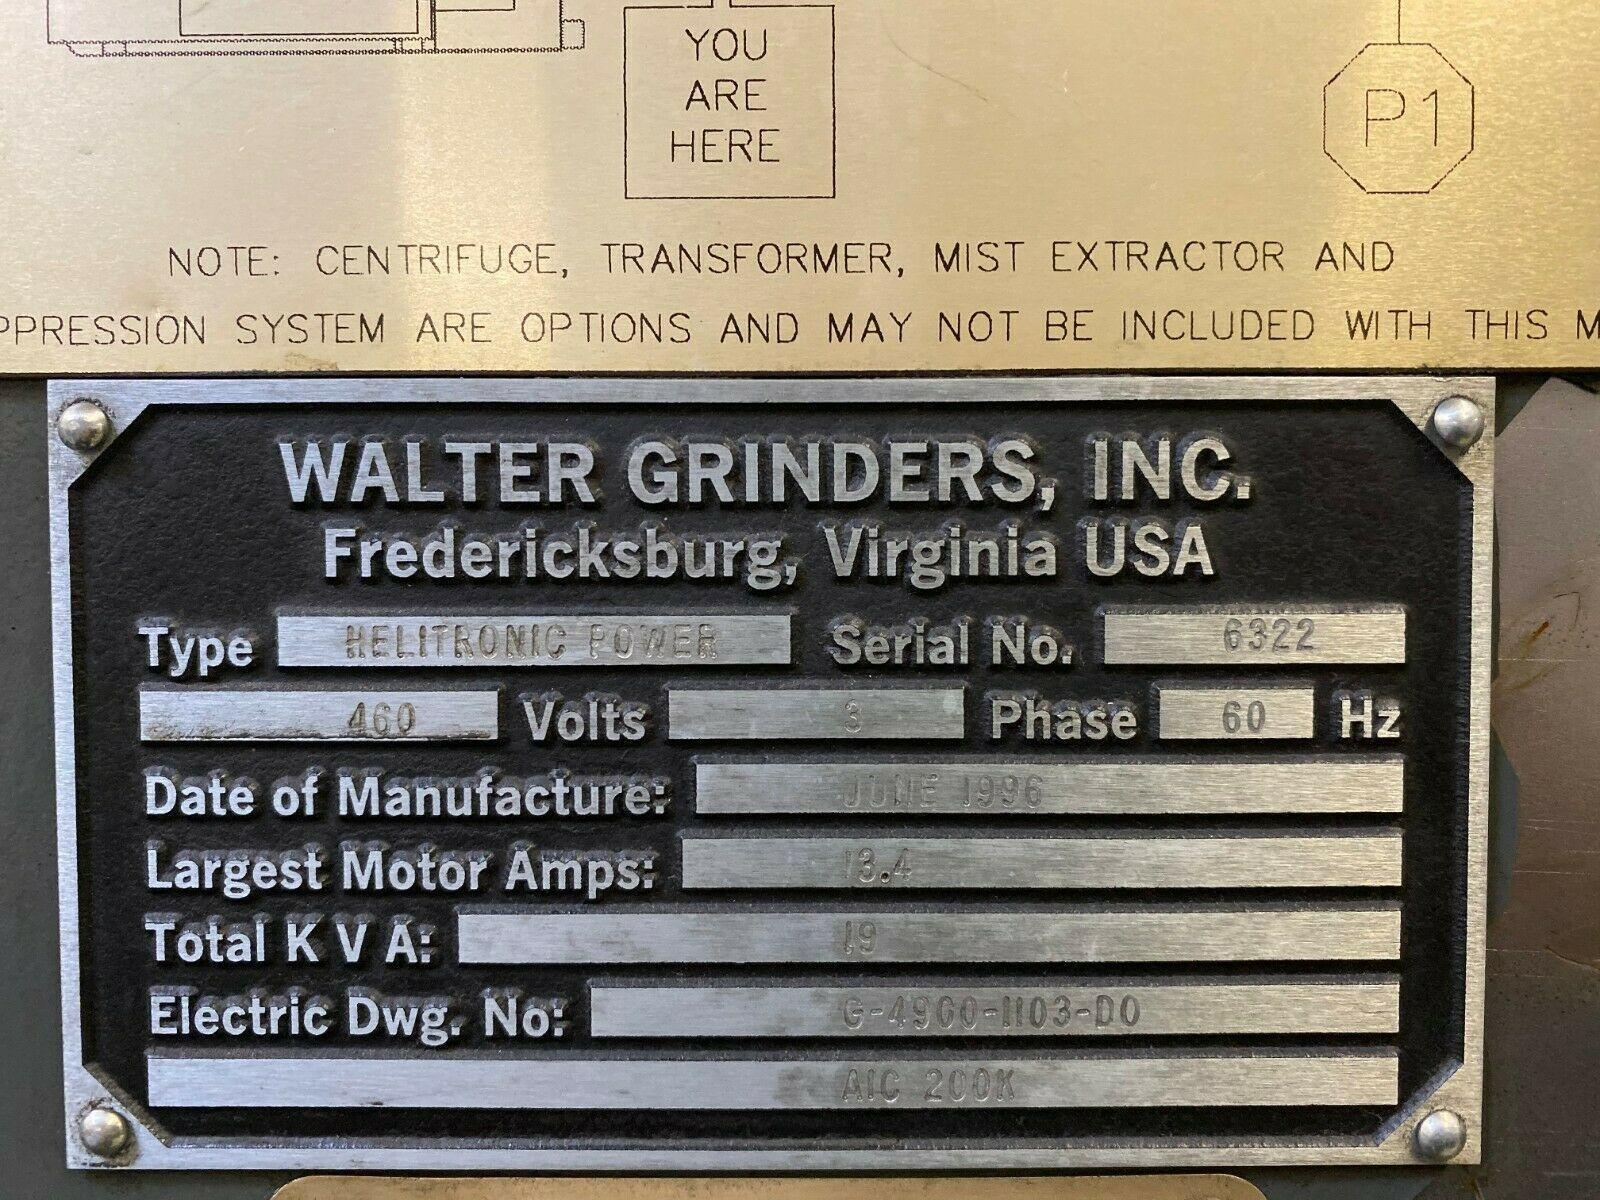 WALTER HELITRONIC POWER HMC-400 5-AXIS CNC TOOL & CUTTER GRINDER